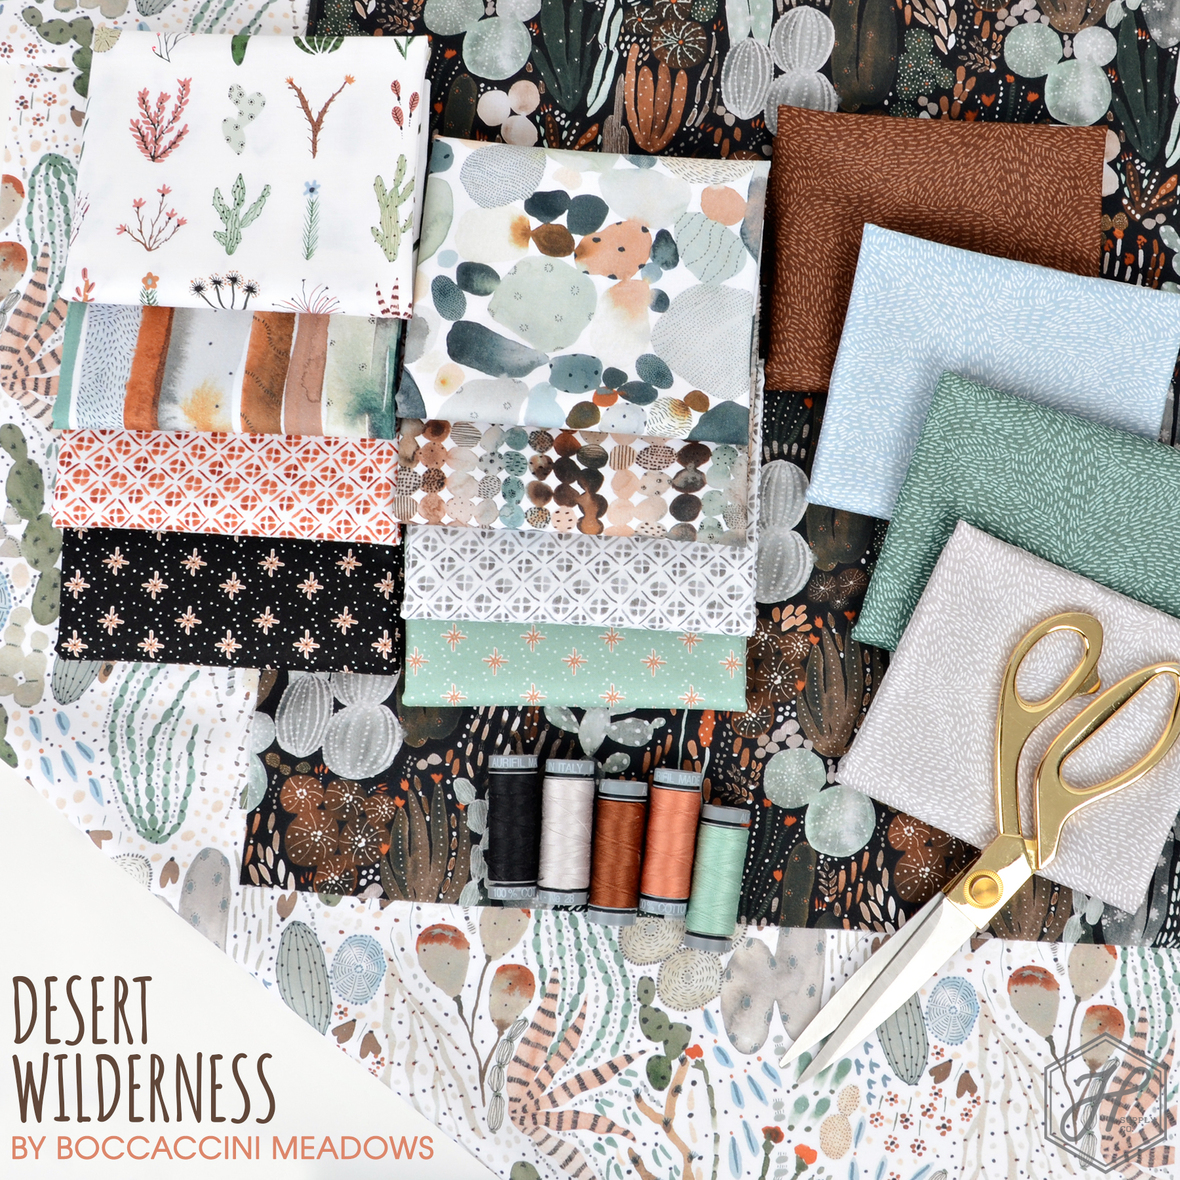 Desert Wilderness fabric Boccaccini Meadows Figo at Hawthorne Supply Co